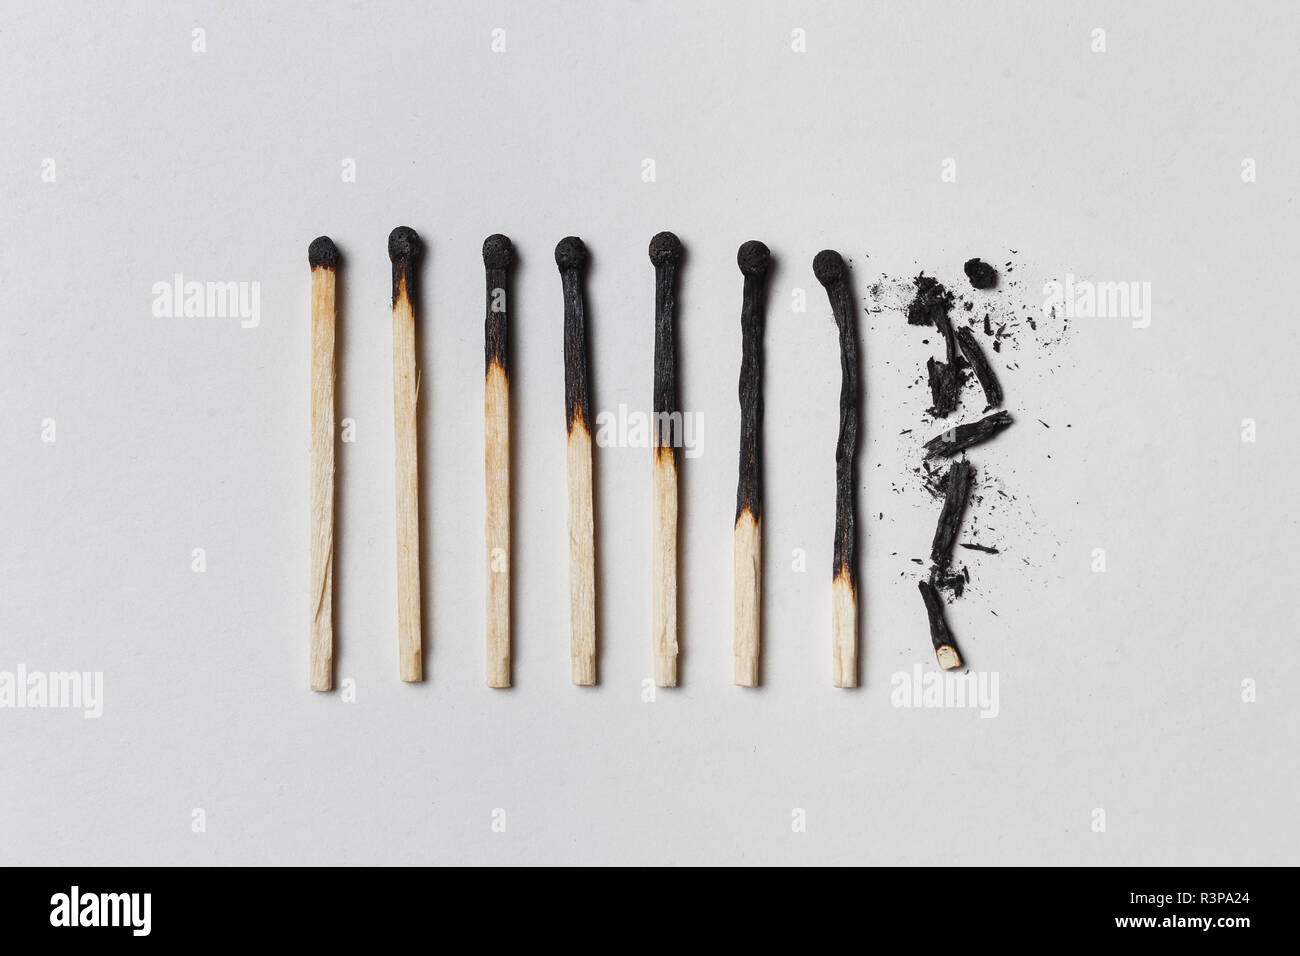 Concept of patience. A row of burnt matches, from left to right, from almost a whole match to a completely burnt match to the dust. White background, flat lay. - Stock Image